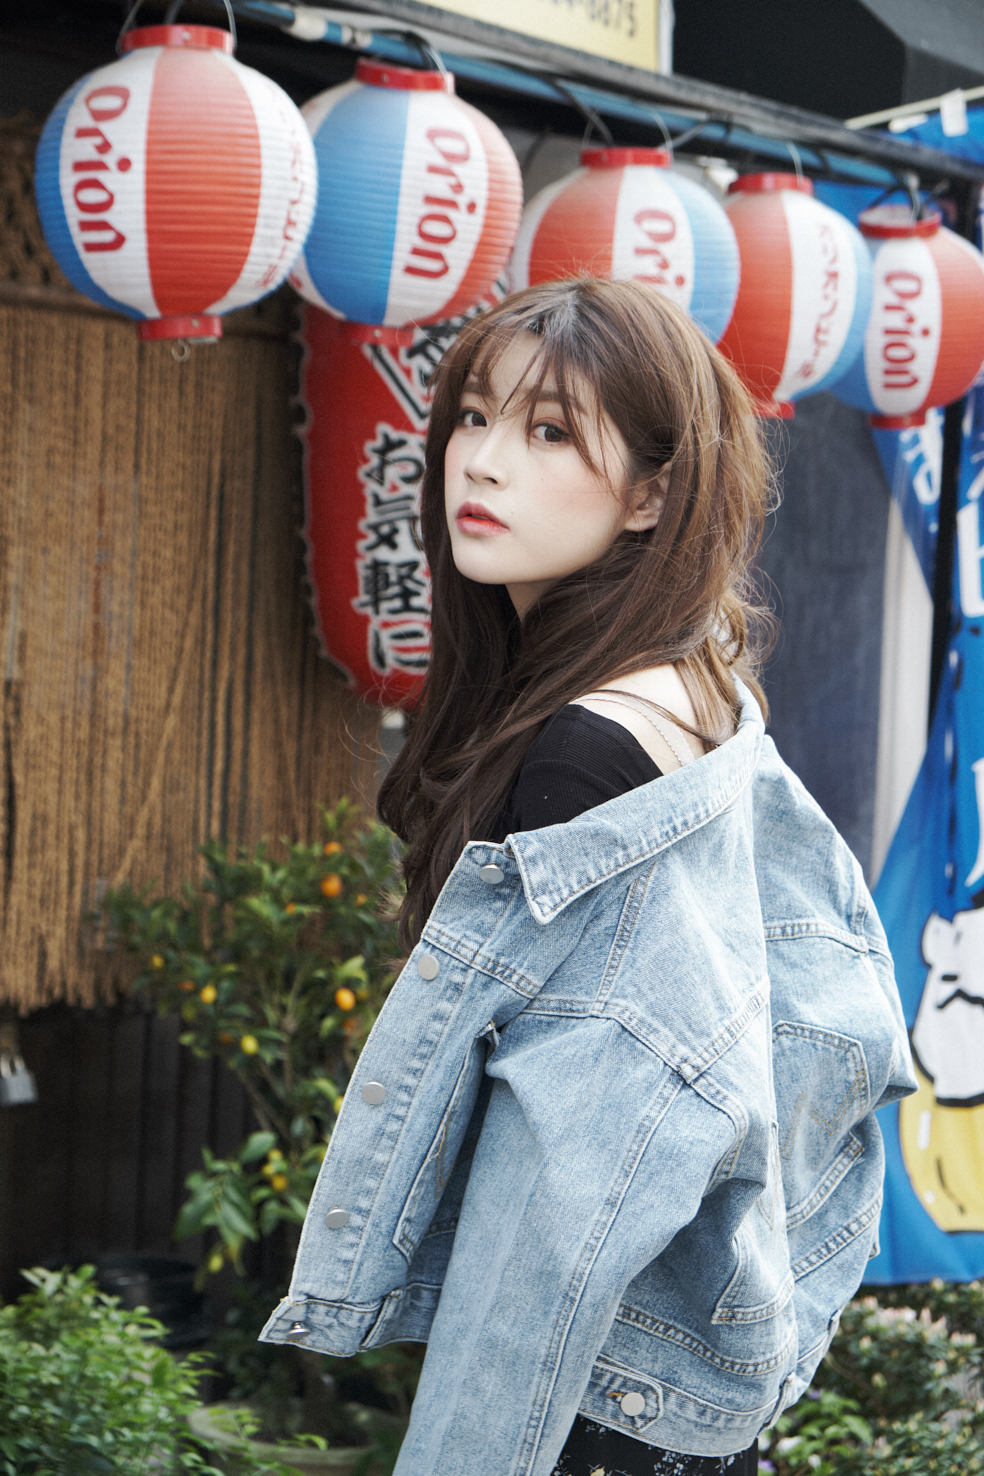 Seoul street fashion spring lookbook in Seoul South Korea